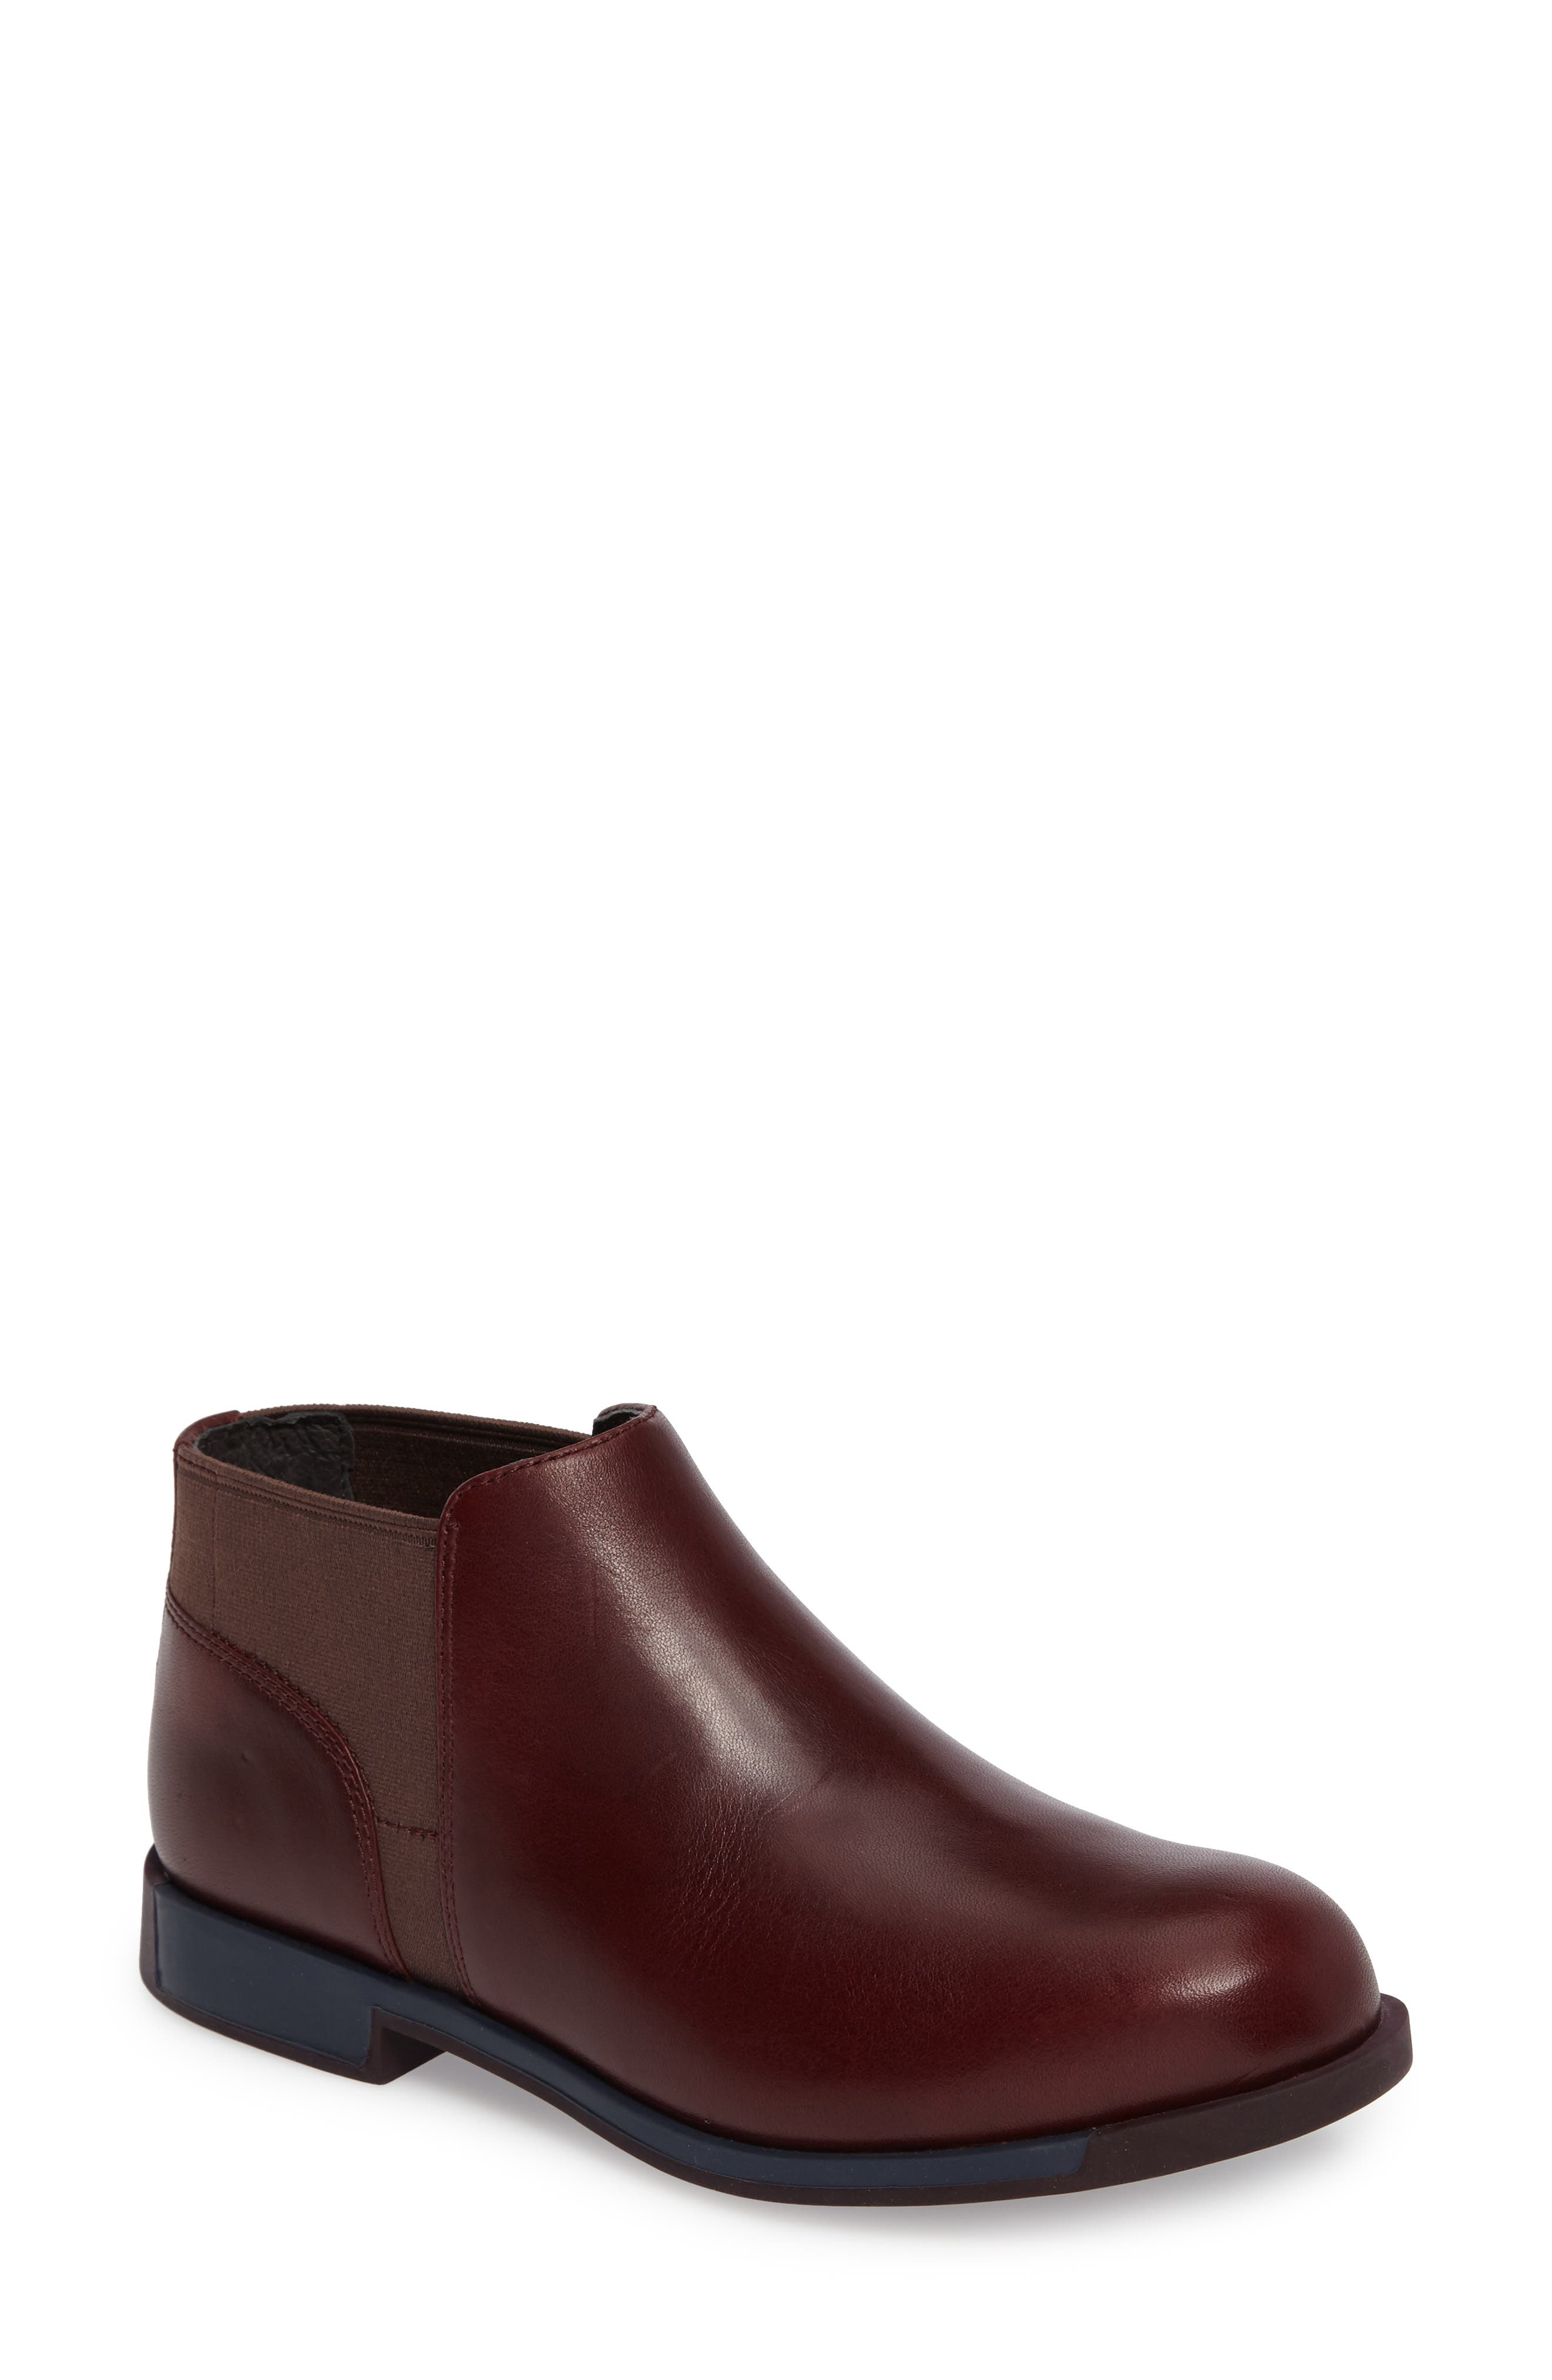 Main Image - Camper Bowie Chelsea Boot (Women)